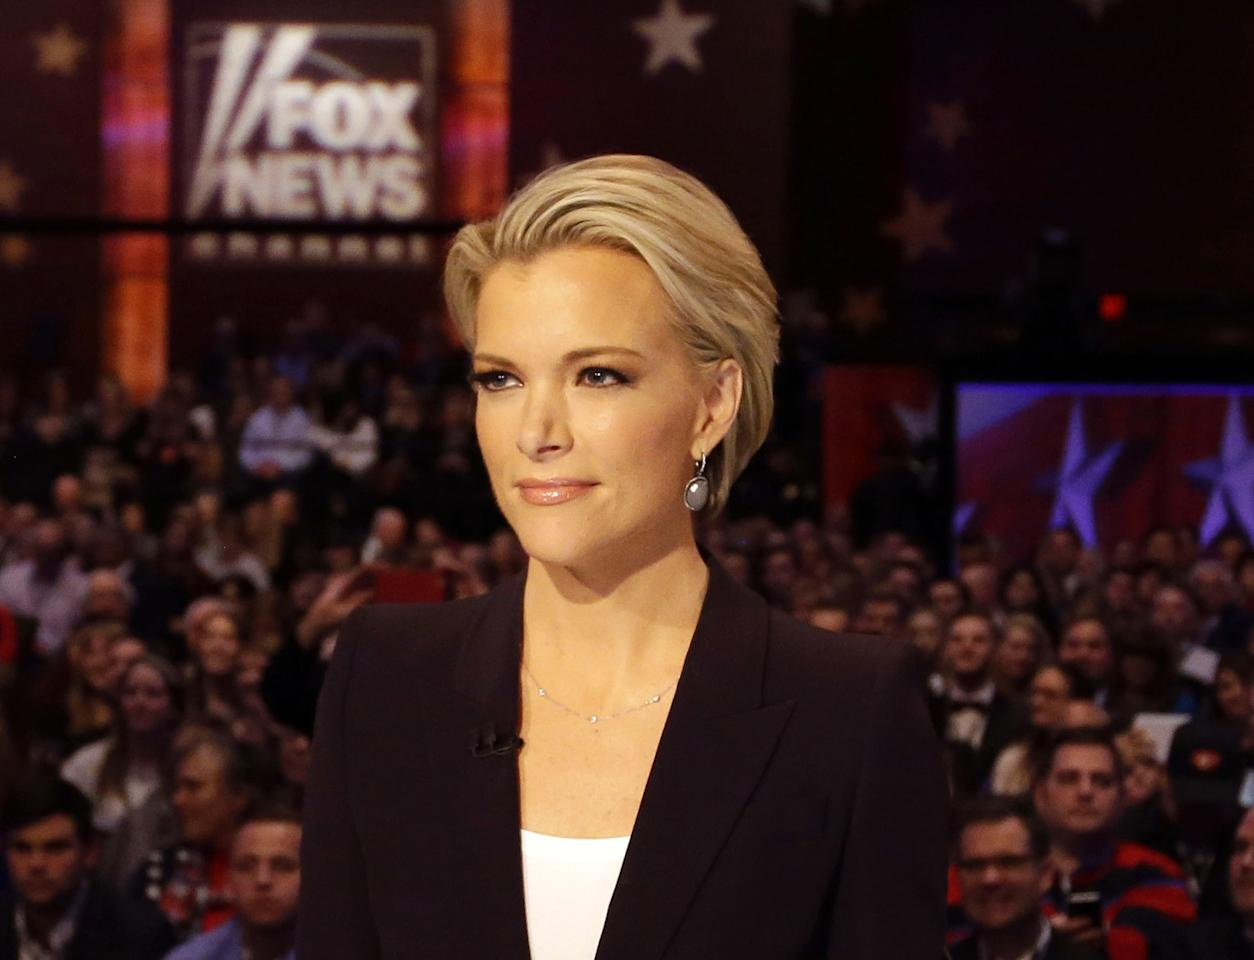 FILE - In this Jan. 28, 2016 photo, Moderator Megyn Kelly waits for the start of the Republican presidential primary debate in Des Moines, Iowa. On July 19, New York magazine reported that Kelly told investigators that her boss, Roger Ailes made unwanted sexual advances to her ten years ago. A lawyer for Ailes later denied that he sexually harassed Kelly. On July 21, Ailes resigned from his position. (AP Photo/Chris Carlson, File)